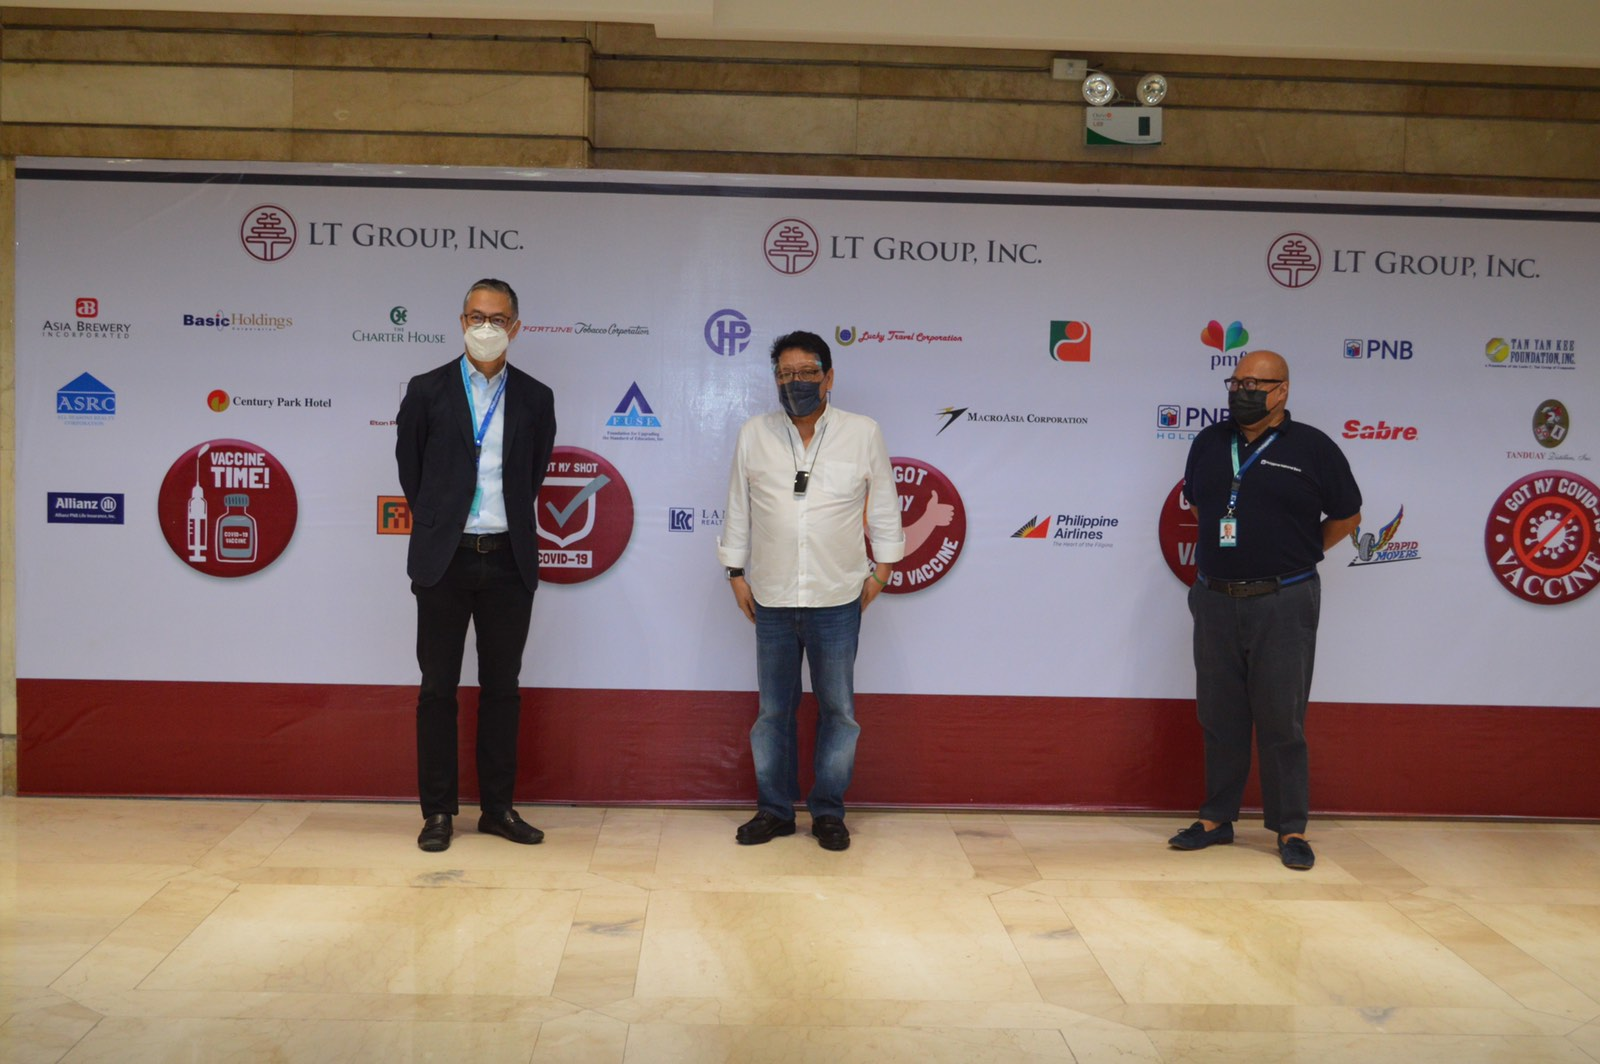 PNB and LT Group, Inc. open vaccination facility